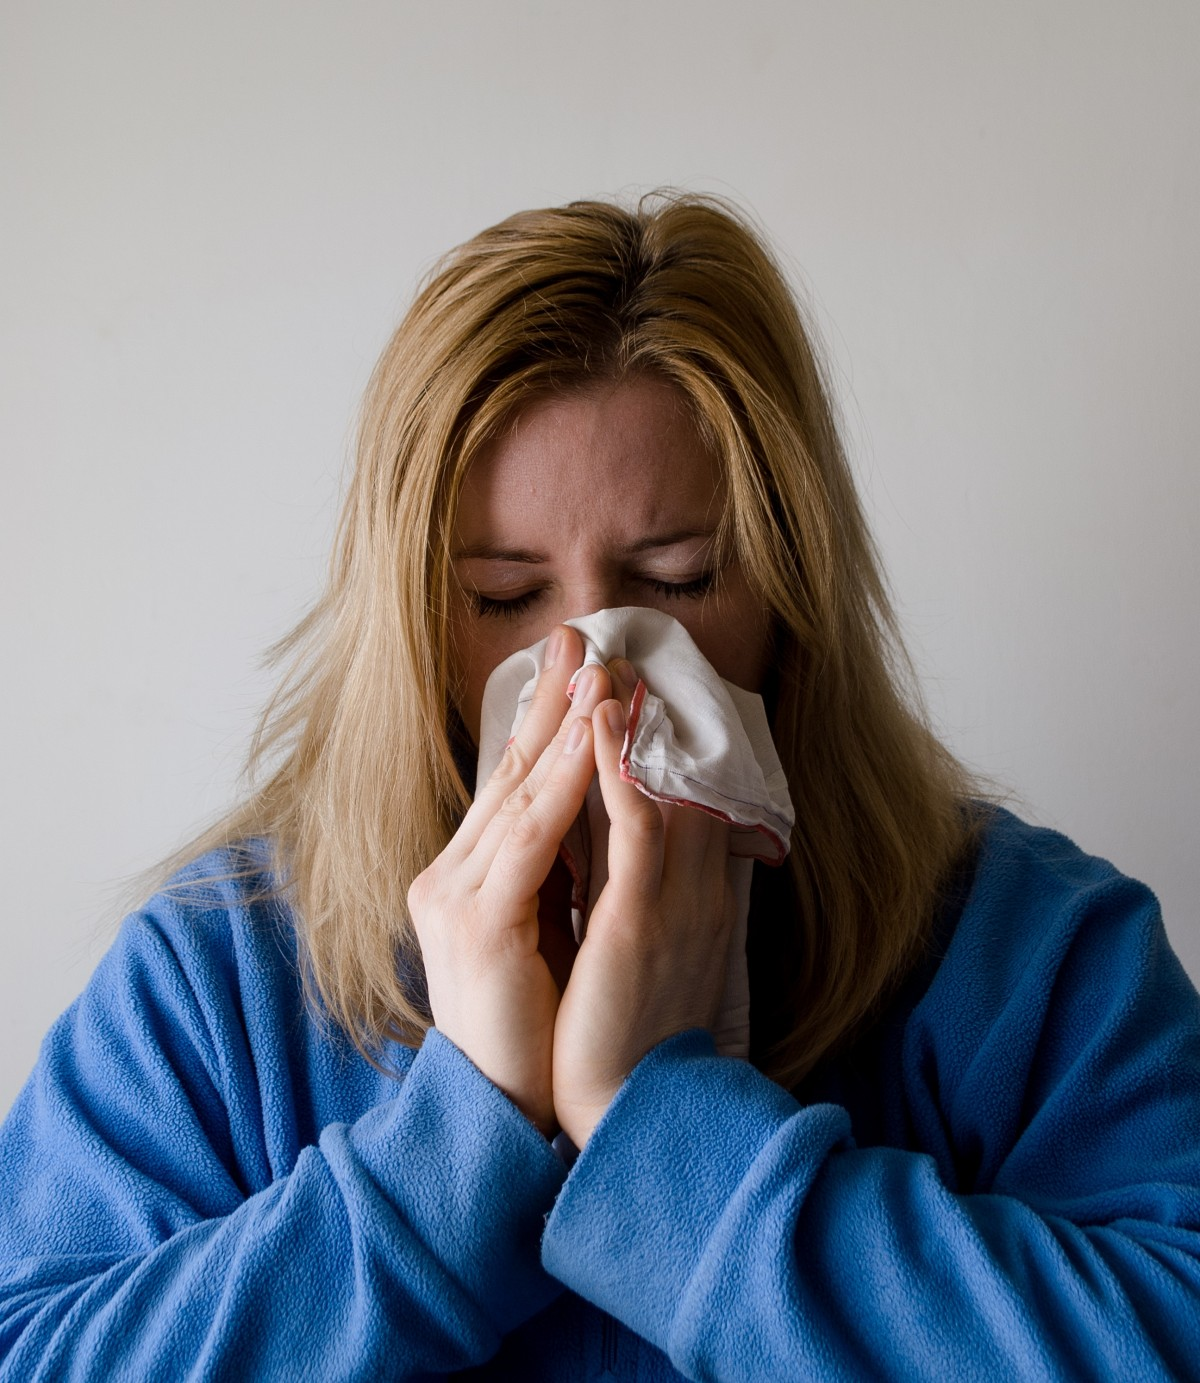 8 Tips to Avoid Getting Sick This Spring